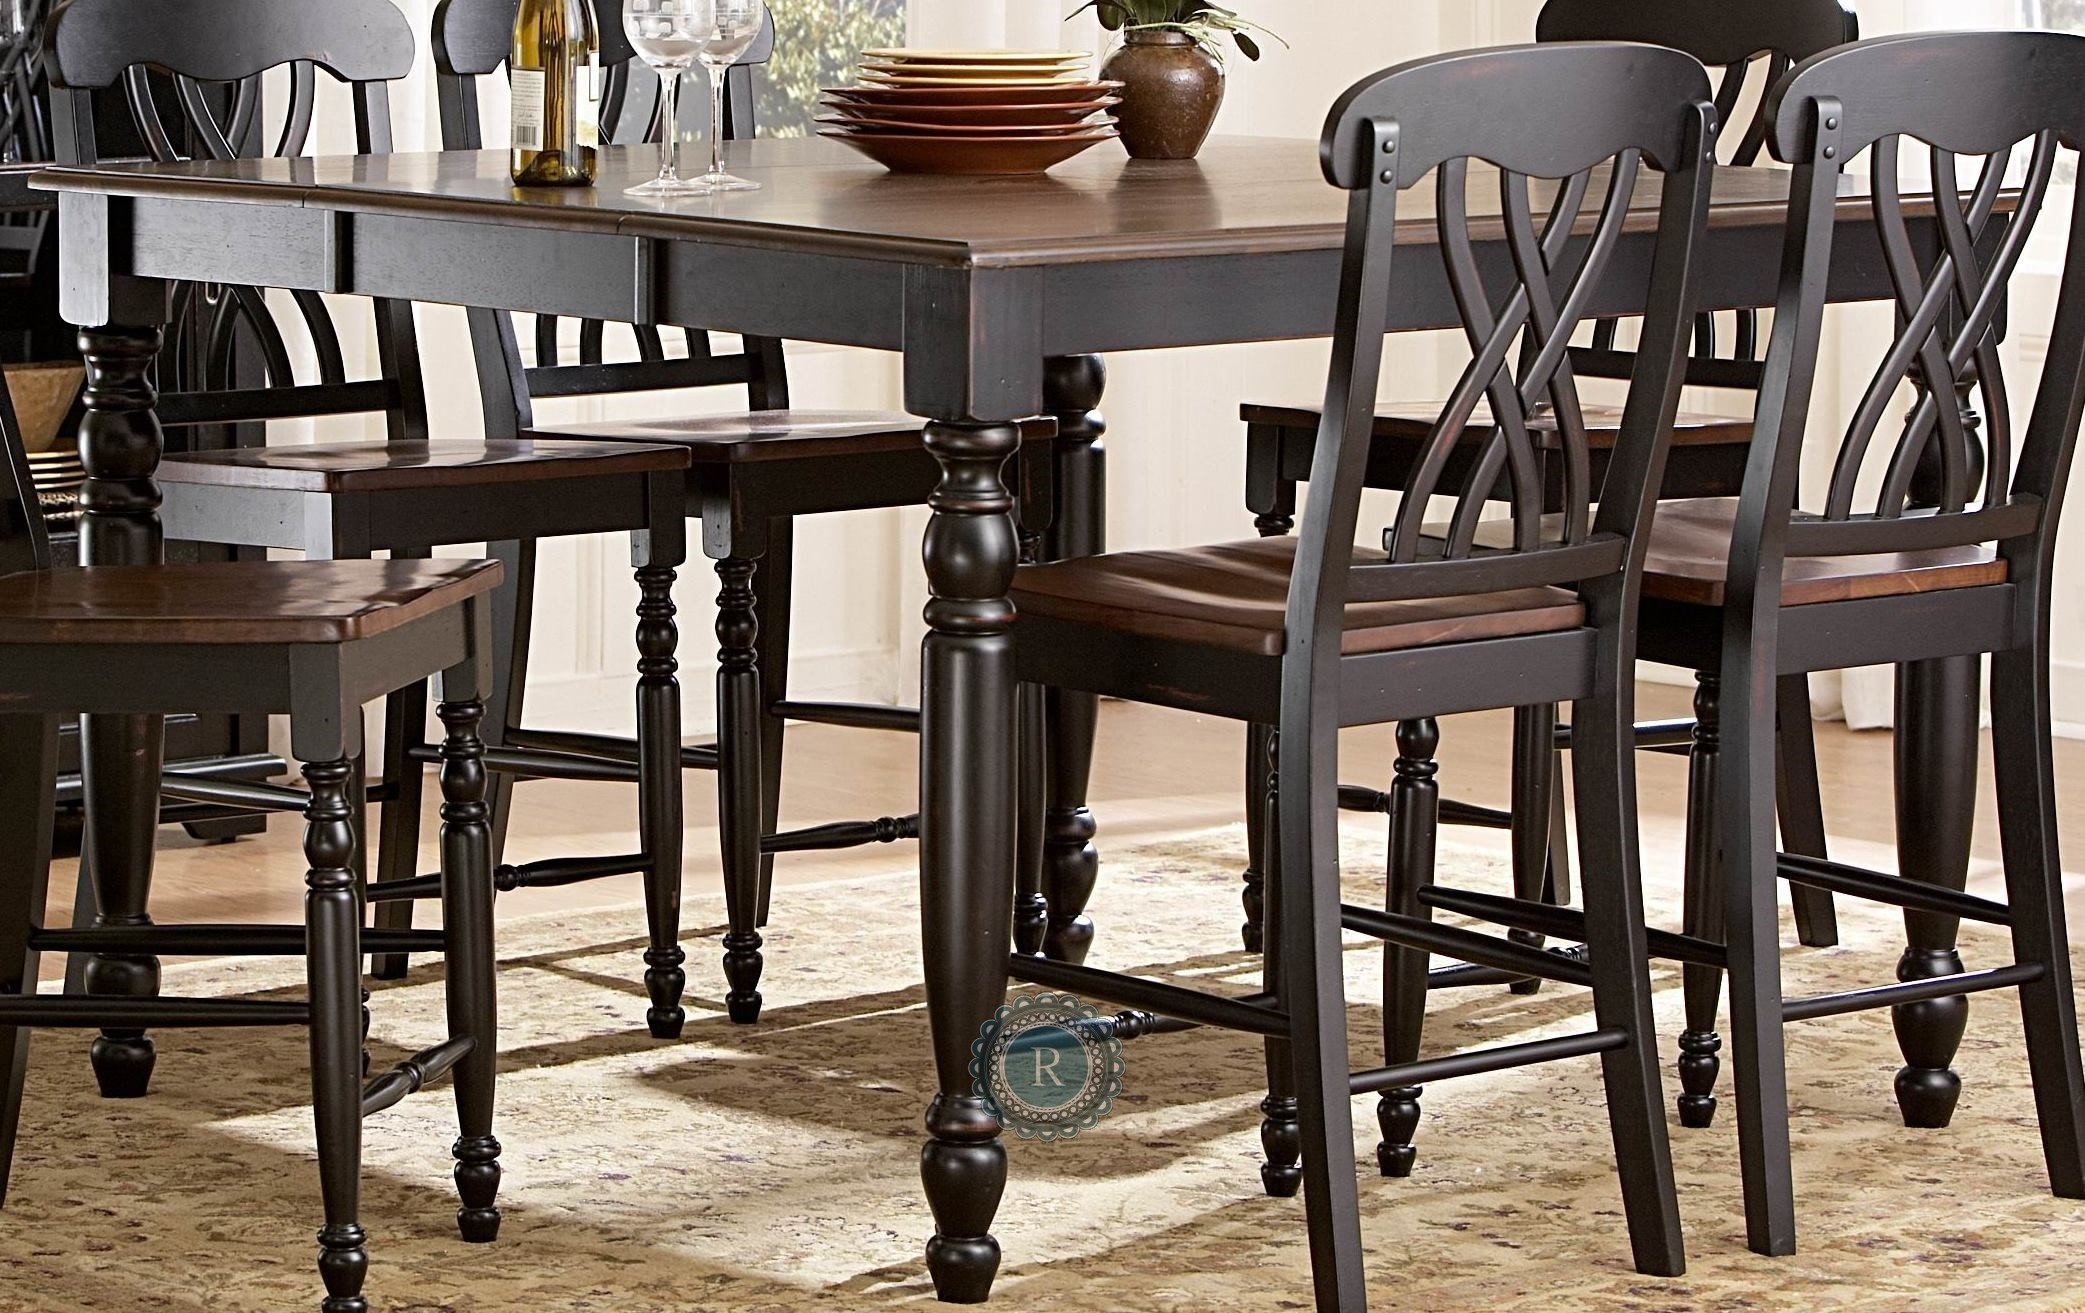 Counter Height Dining Tables: Ohana Black Counter Height Table From Homelegance (1393BK